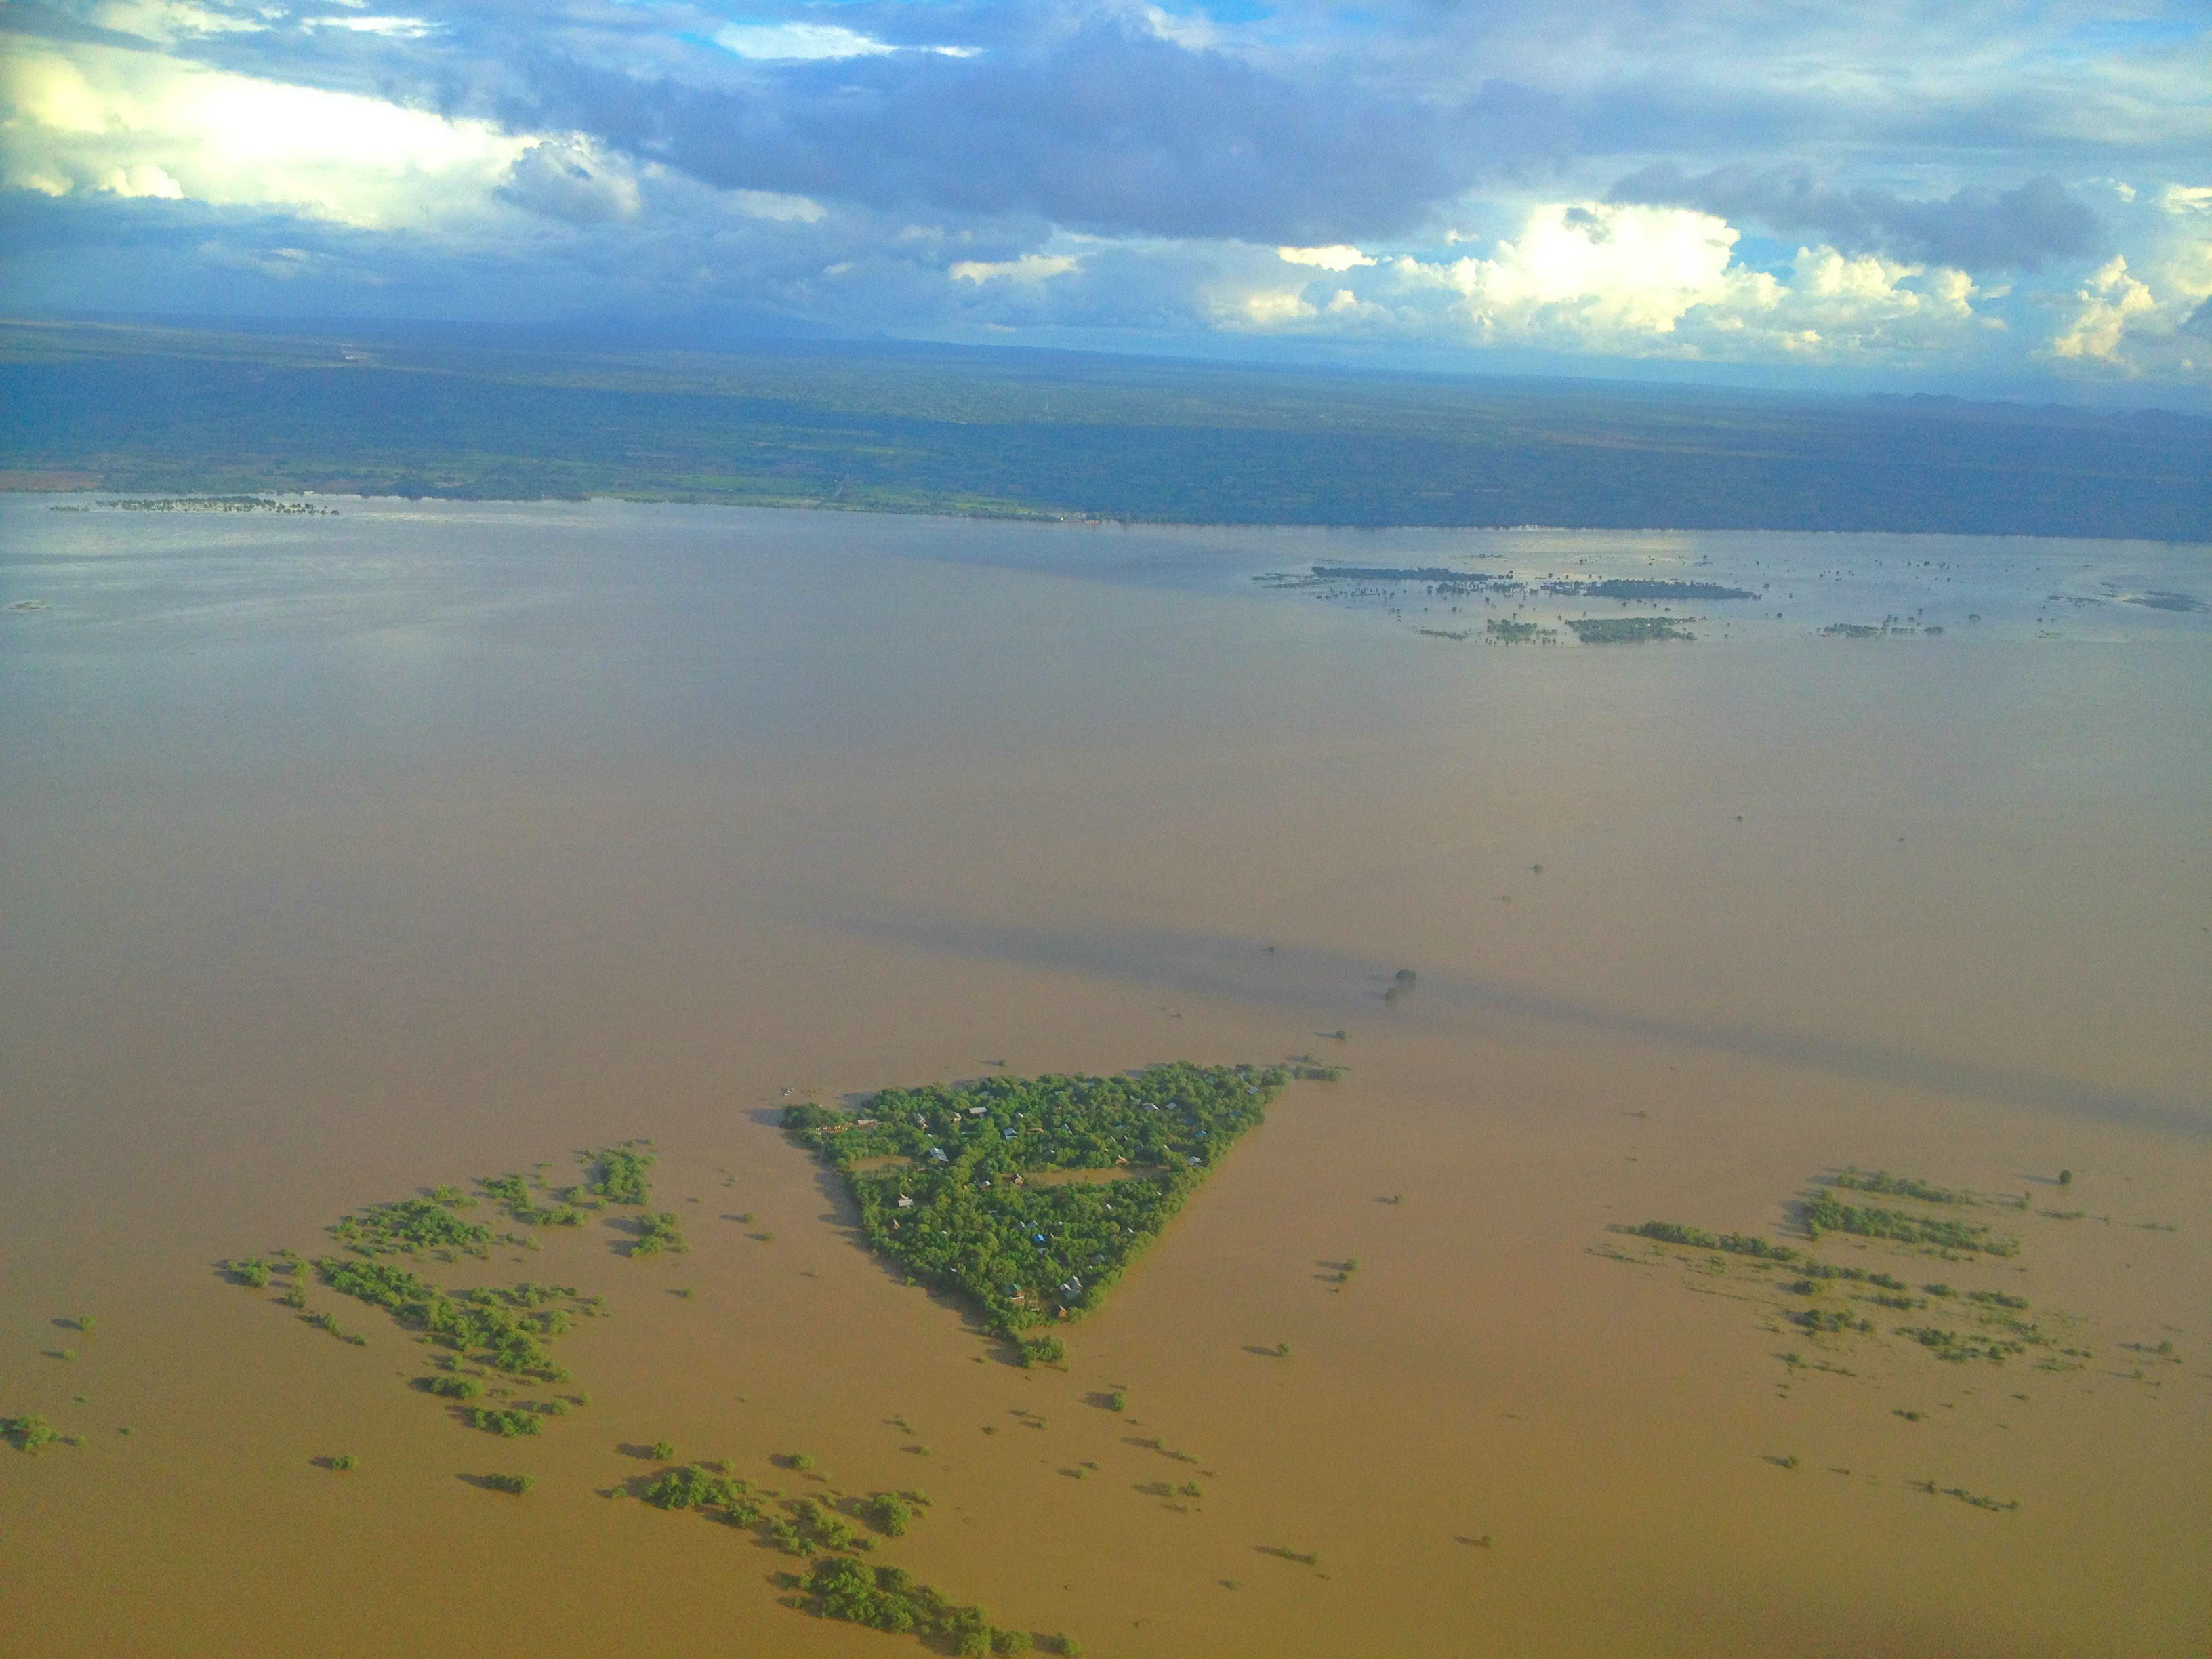 Sept 17: After a day in Yangon, capital city of Myanmar (Burma), I headed towards Bagan. This was when the plane flew over Irrawaddy River.